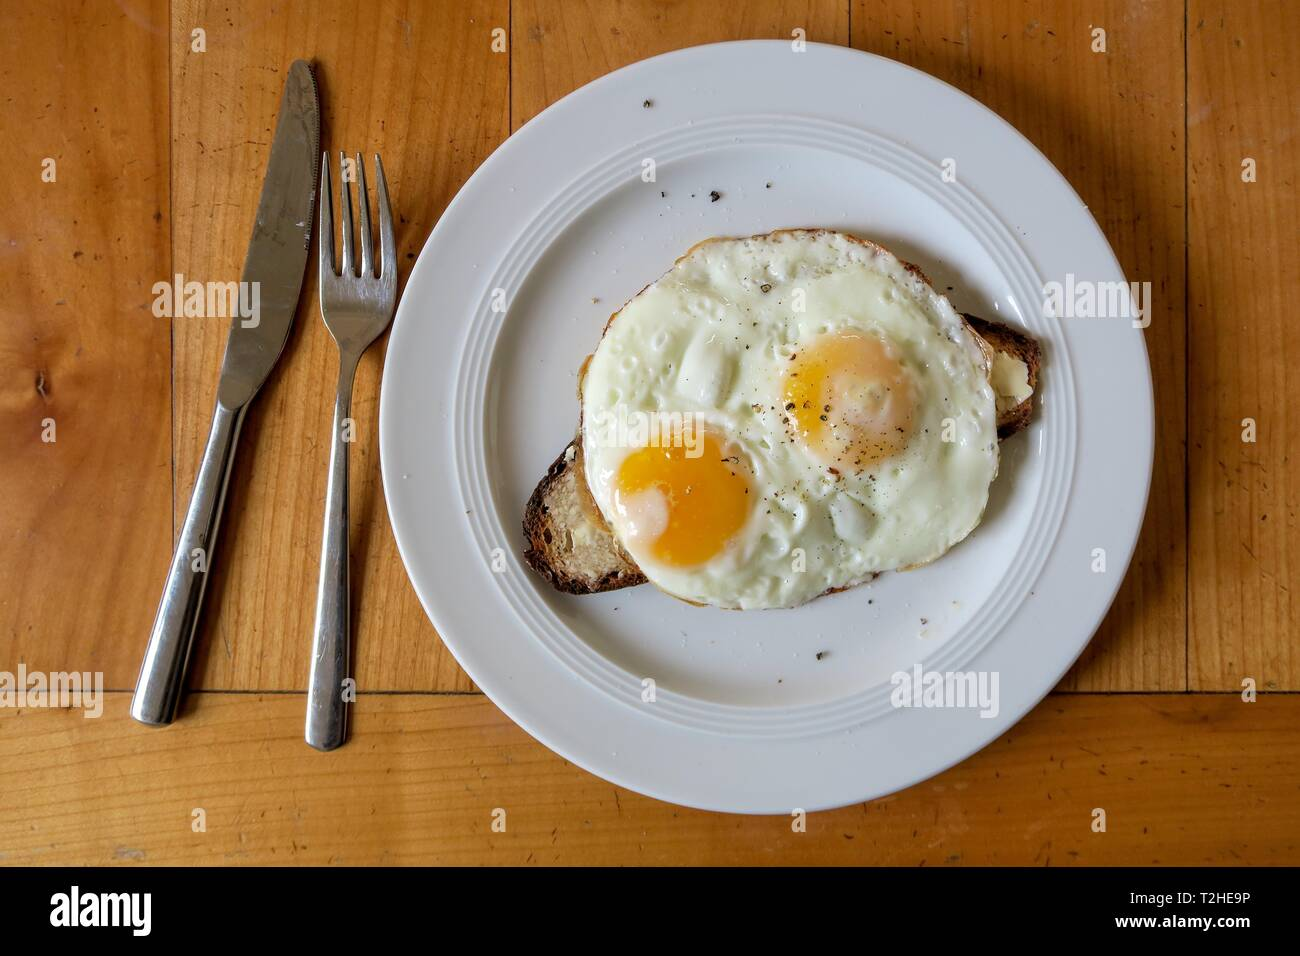 Strammer Max, two fried eggs on bread, white plate, wooden table, cutlery, knife and fork, home cooking, German cuisine, Germany - Stock Image